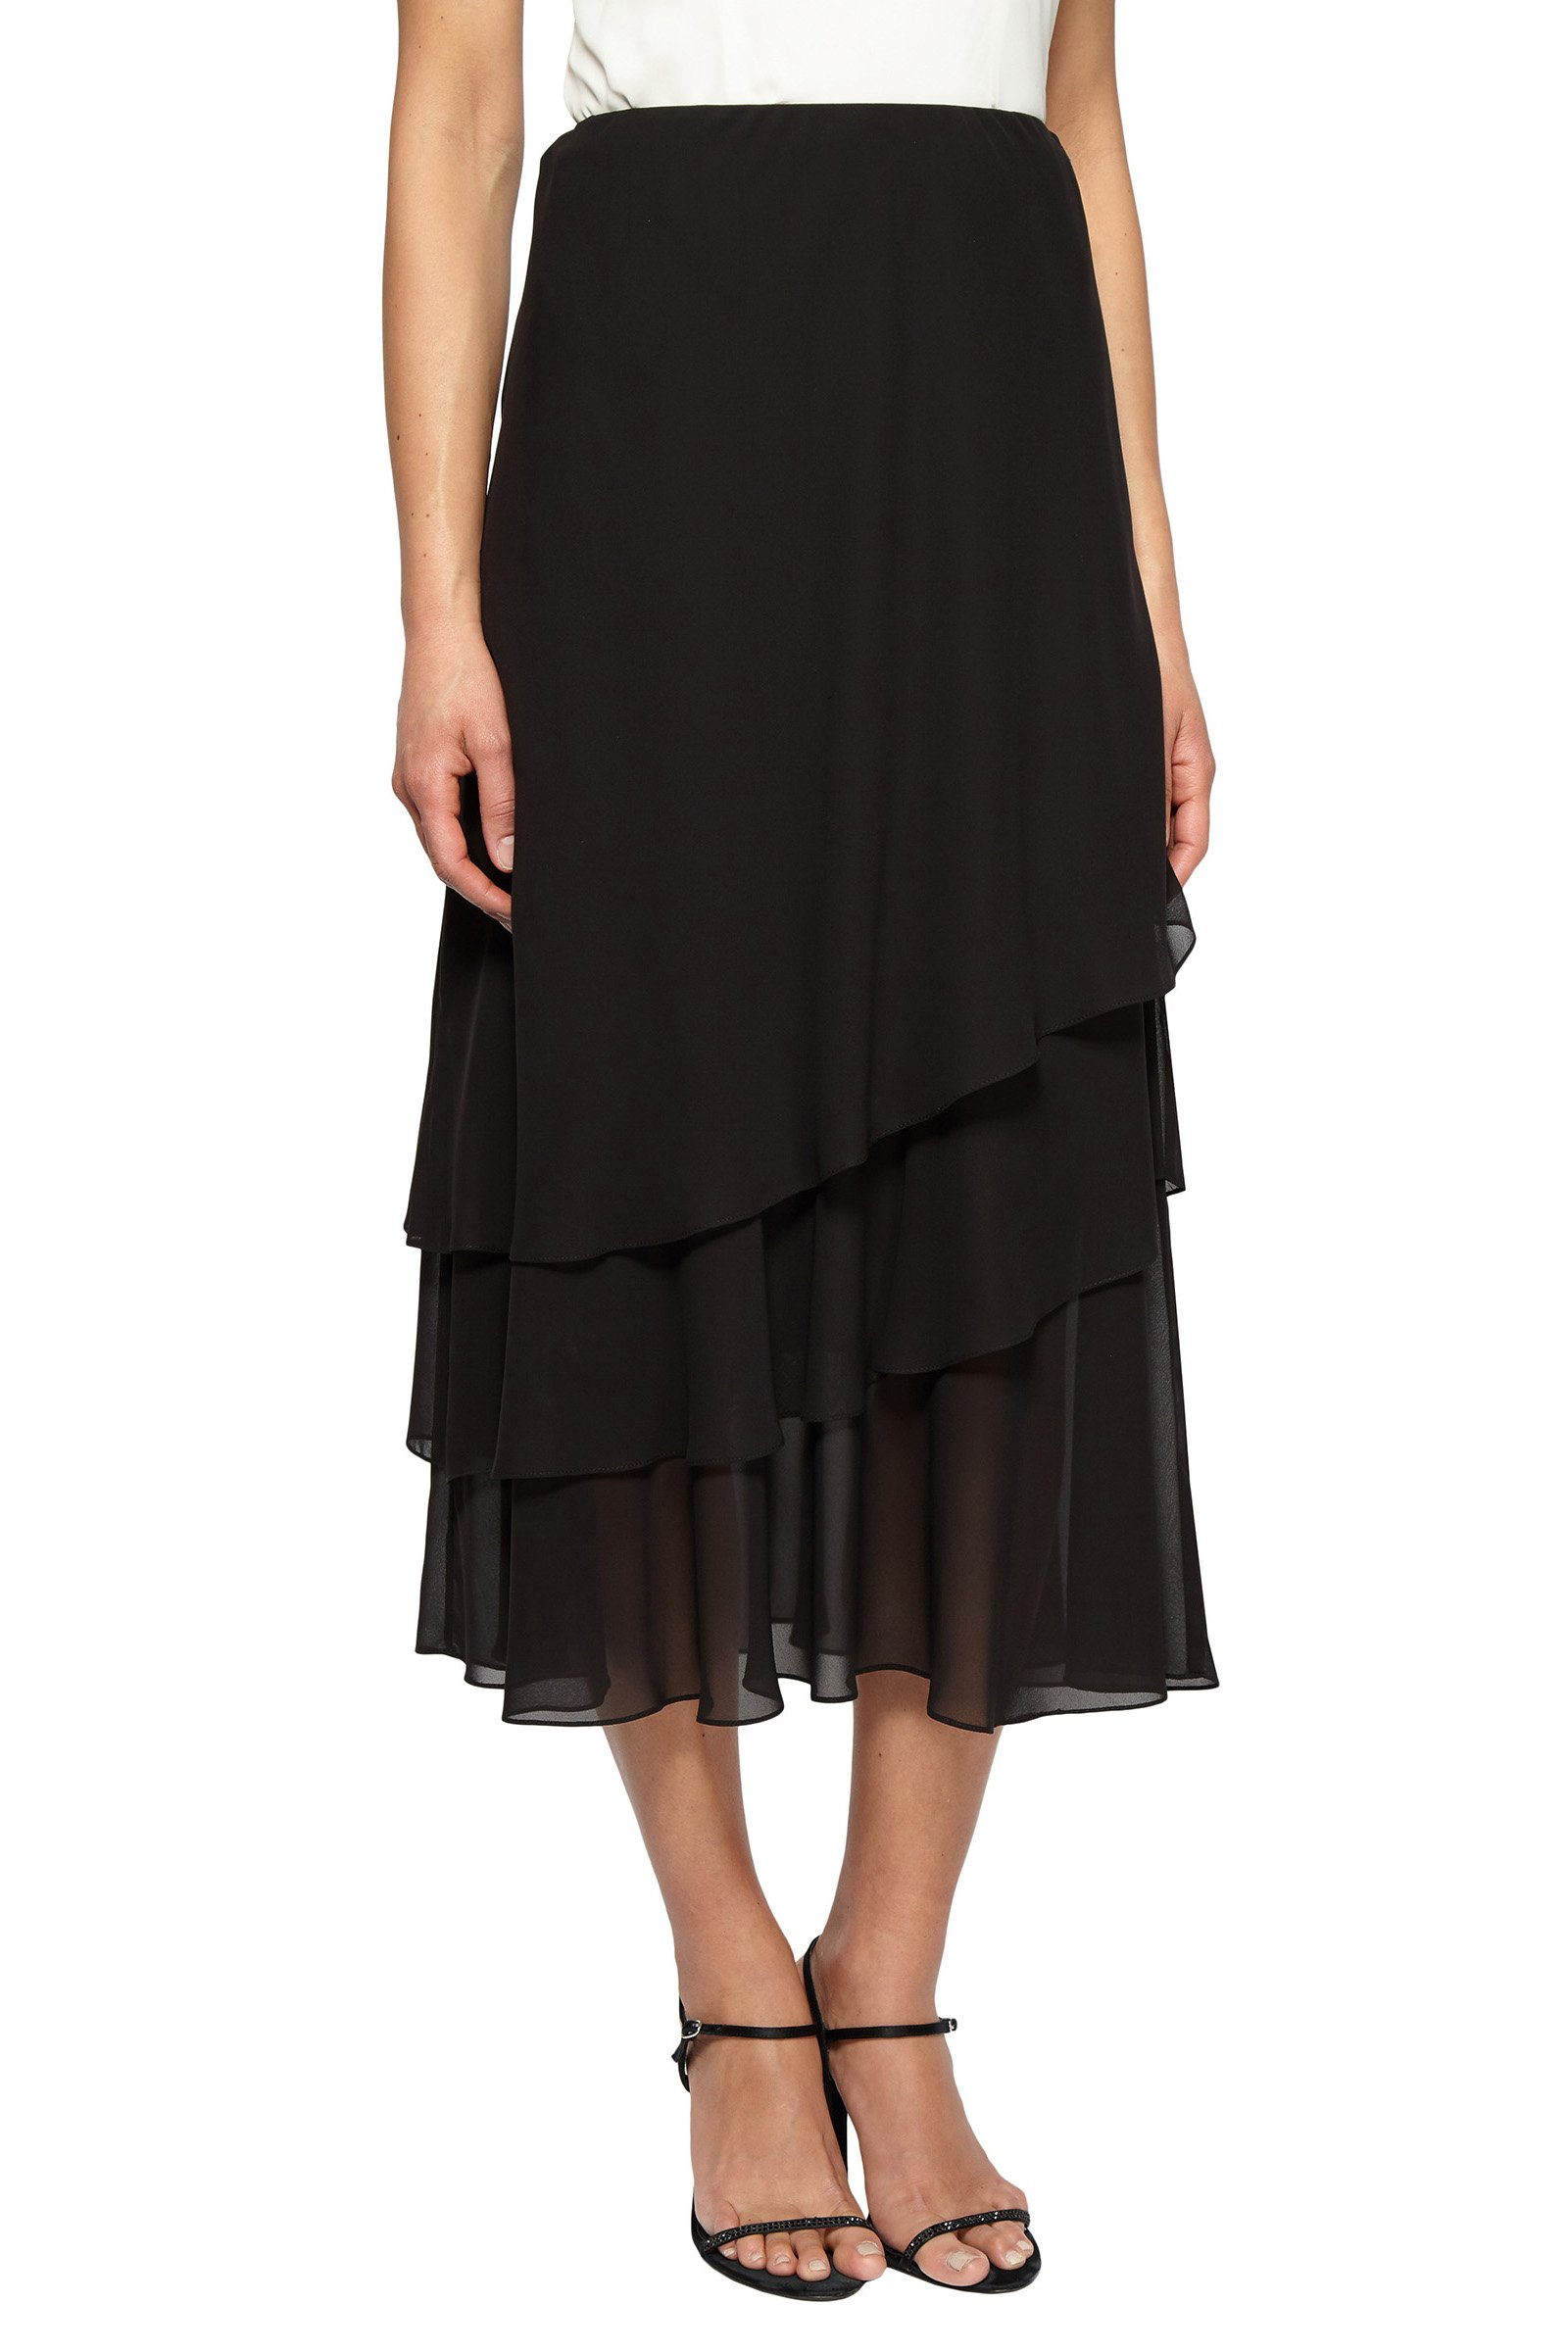 Alex Evenings Women's Chiffon Skirt Various Styles (Petite and Regular Sizes), Black, L